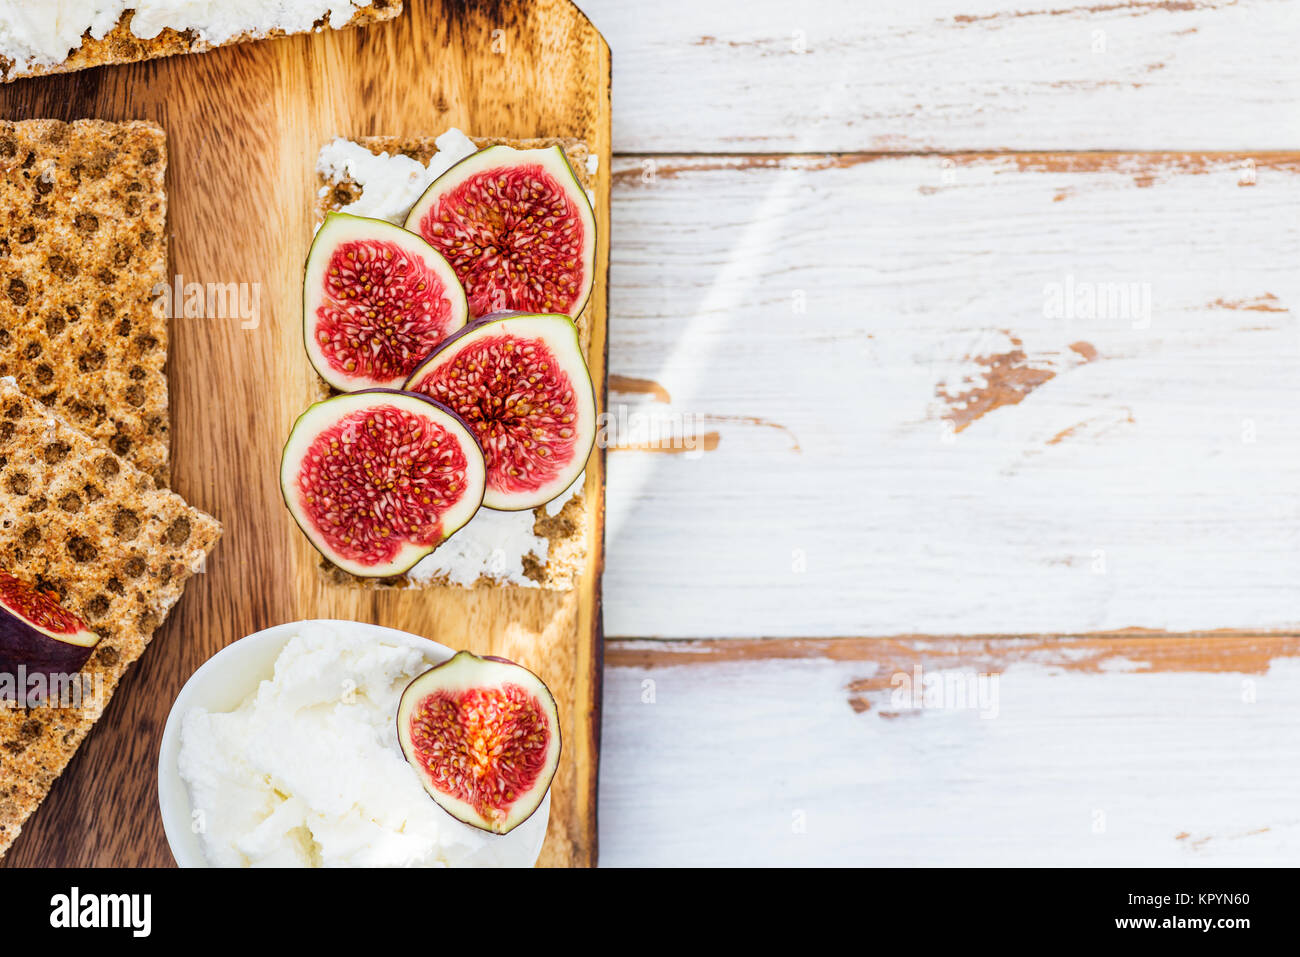 Healthy snack from wholegrain rye crispbread crackers, figs and ricotta cheese on light wooden background - Stock Image